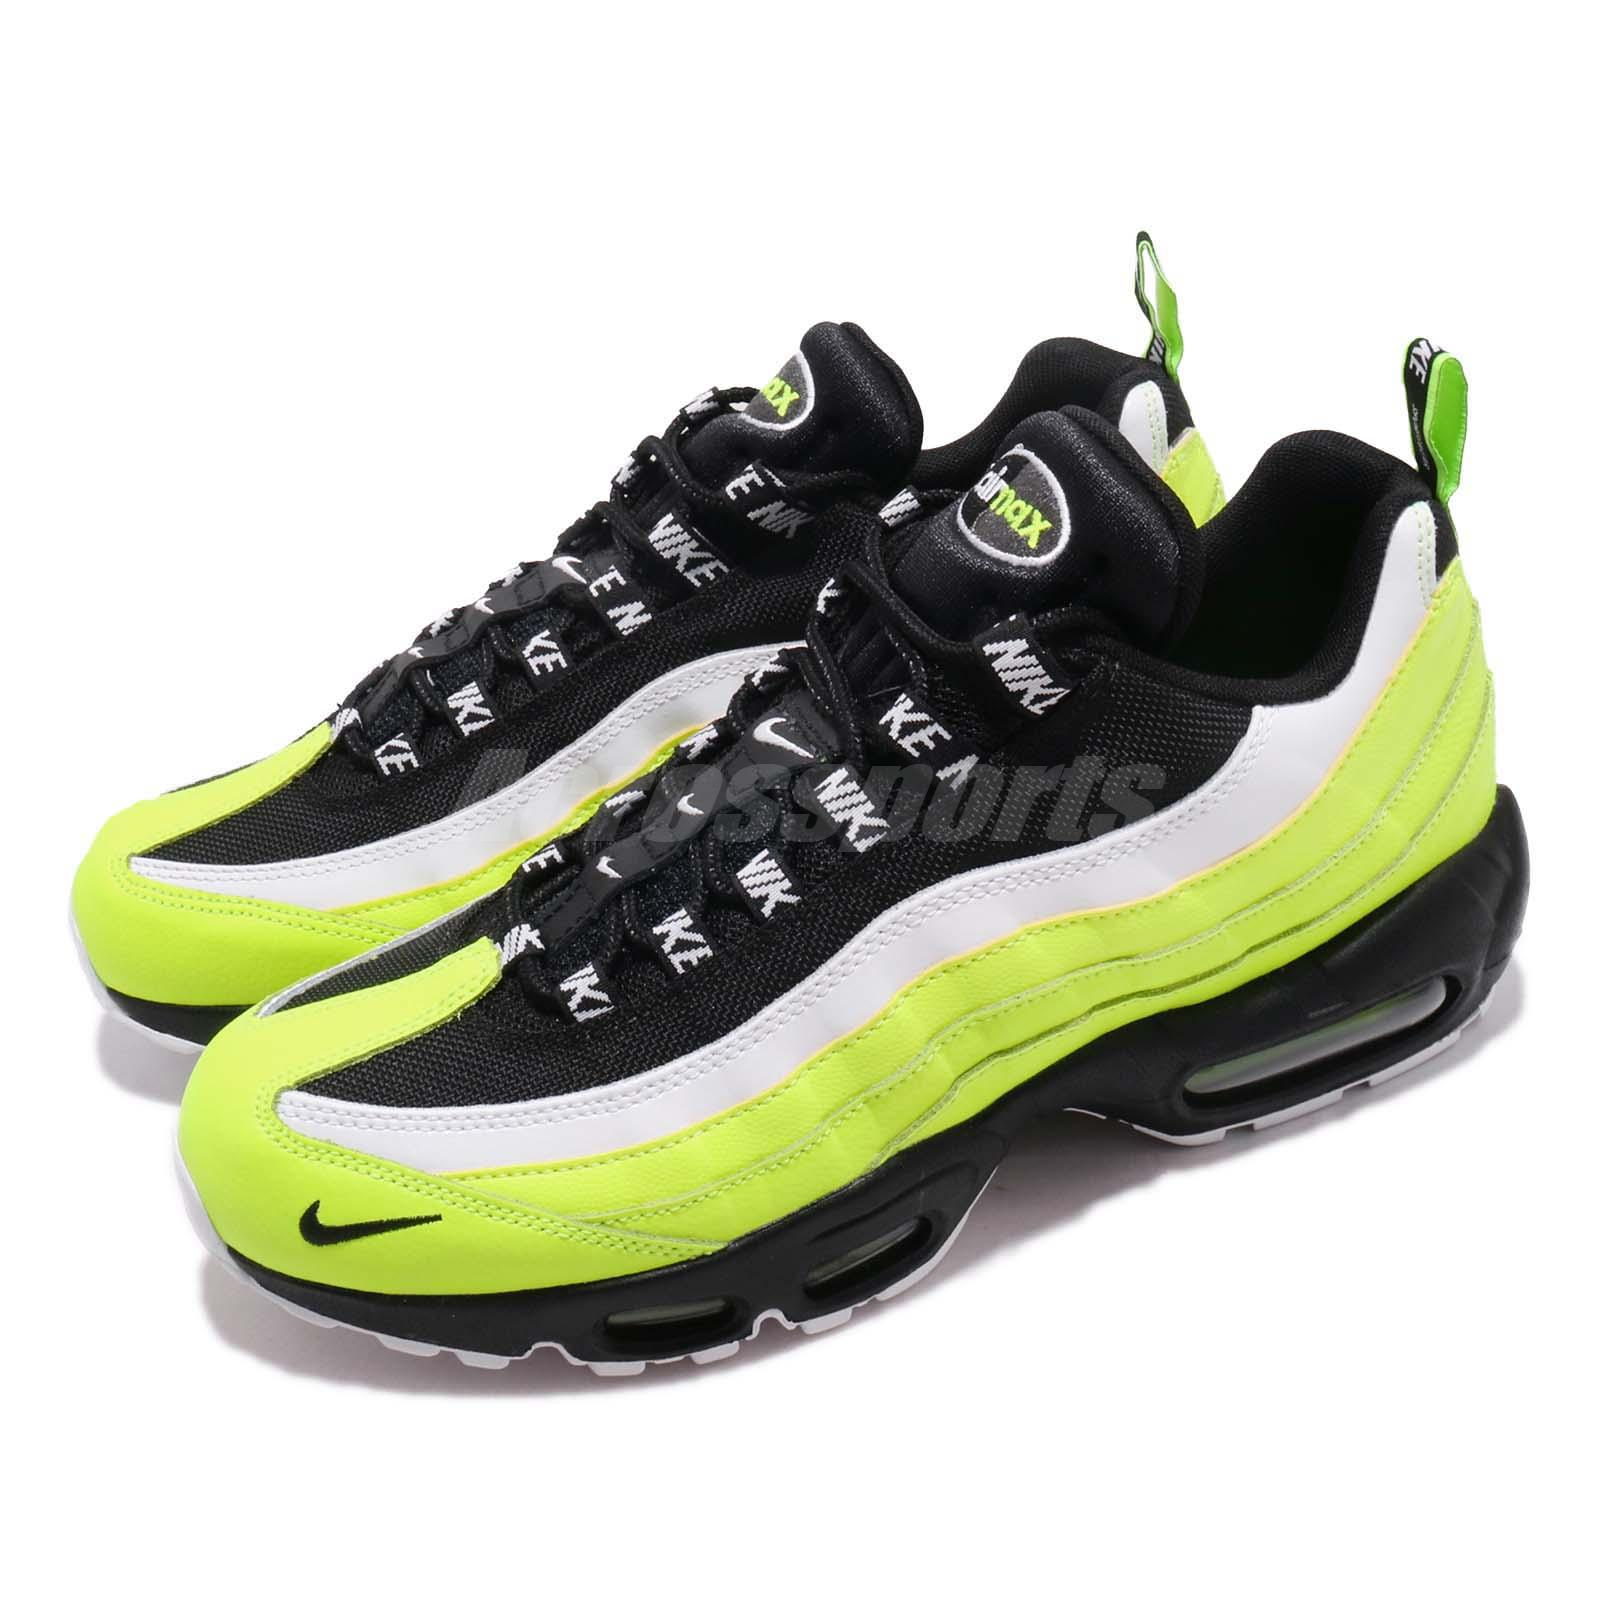 Details about Nike Air Max 95 PRM Volt Black Mens Running Shoes NSW Sneakers 538416 701